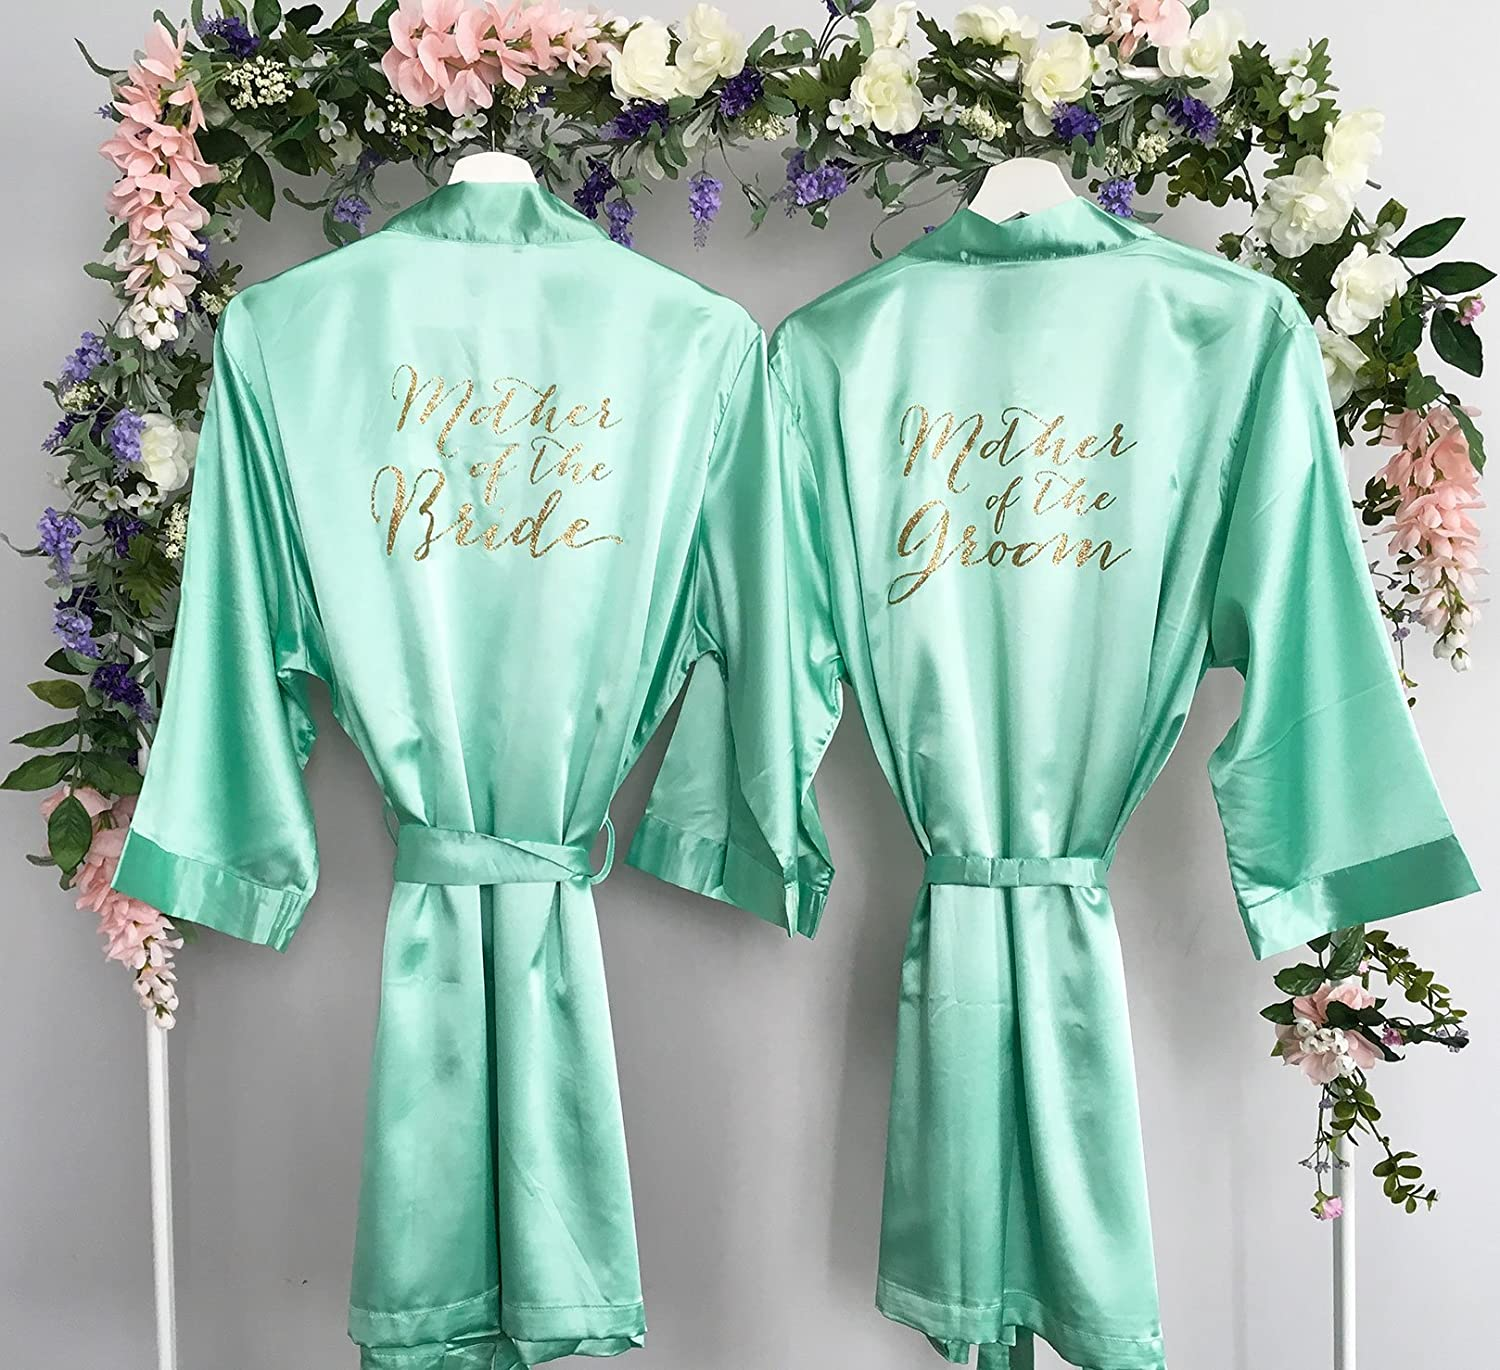 Mother of the Bride Robe, Mother of the Groom Robe, Set of 2 Satin Robes, Mother of the Bride Gift, Mother of the Groom Gift, MANY COLORS